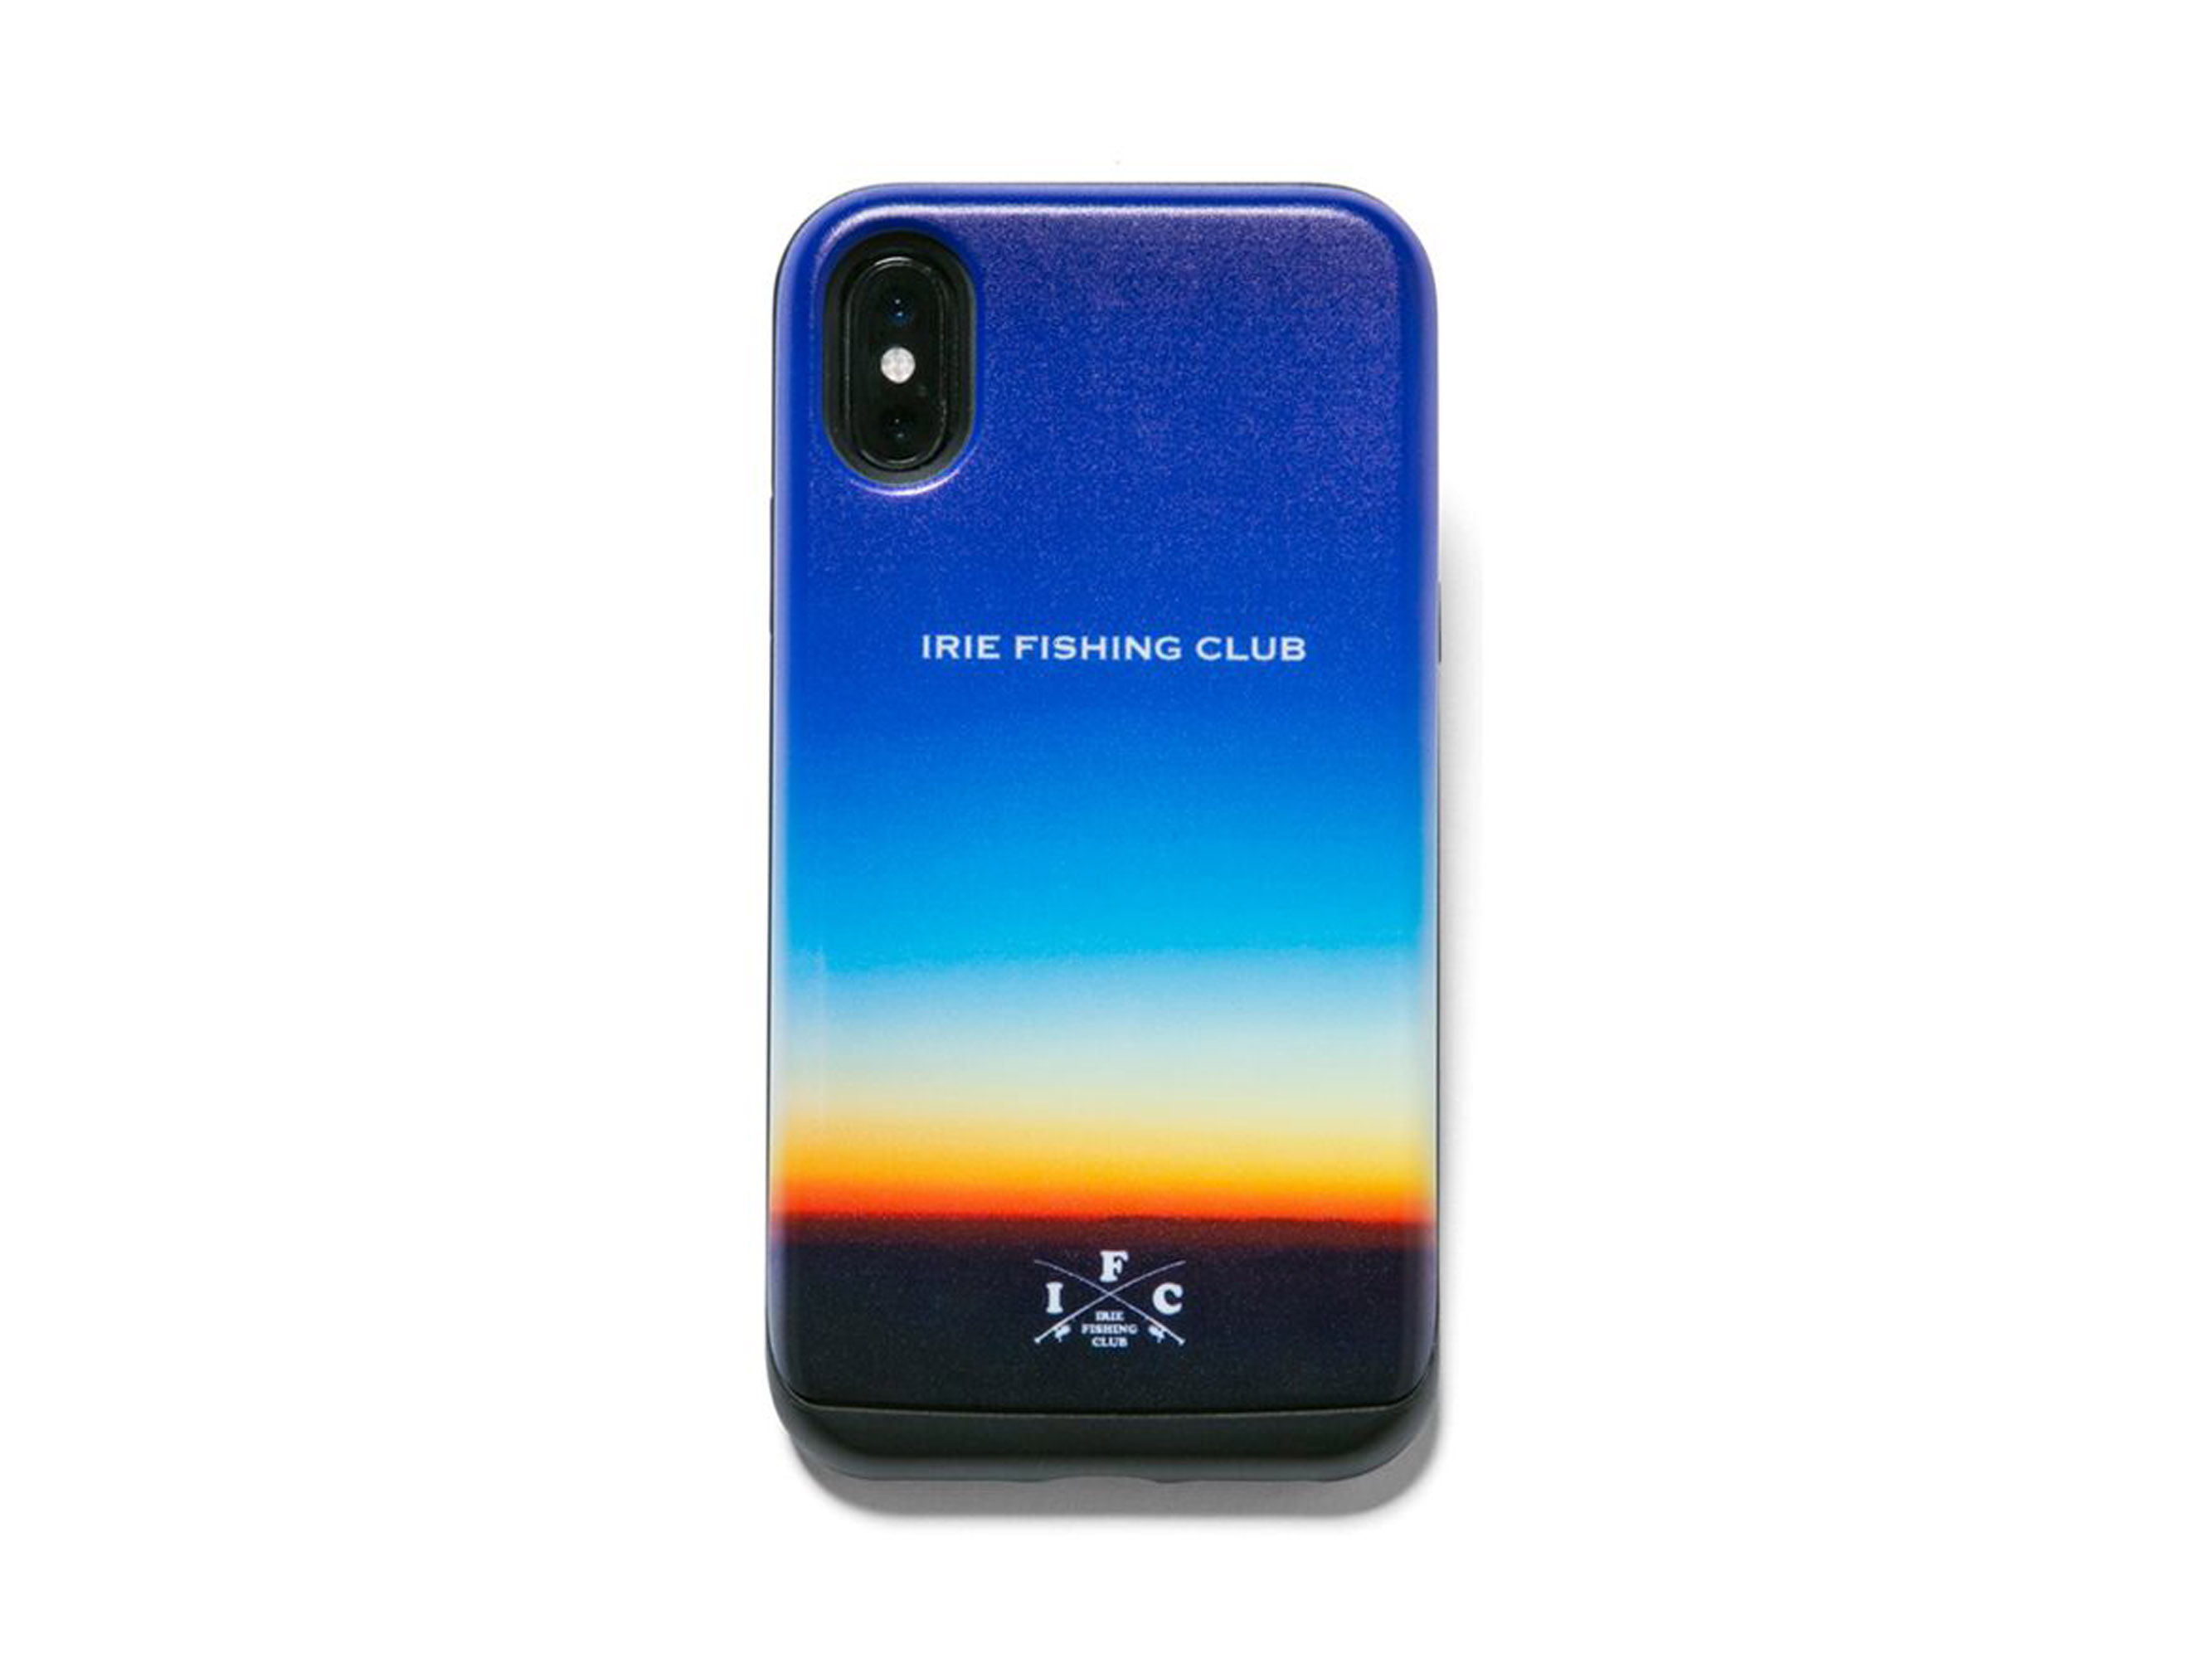 【再入荷】I.F.C CARD SLIDE iPhone CASE -IRIE FISHING CLUB-